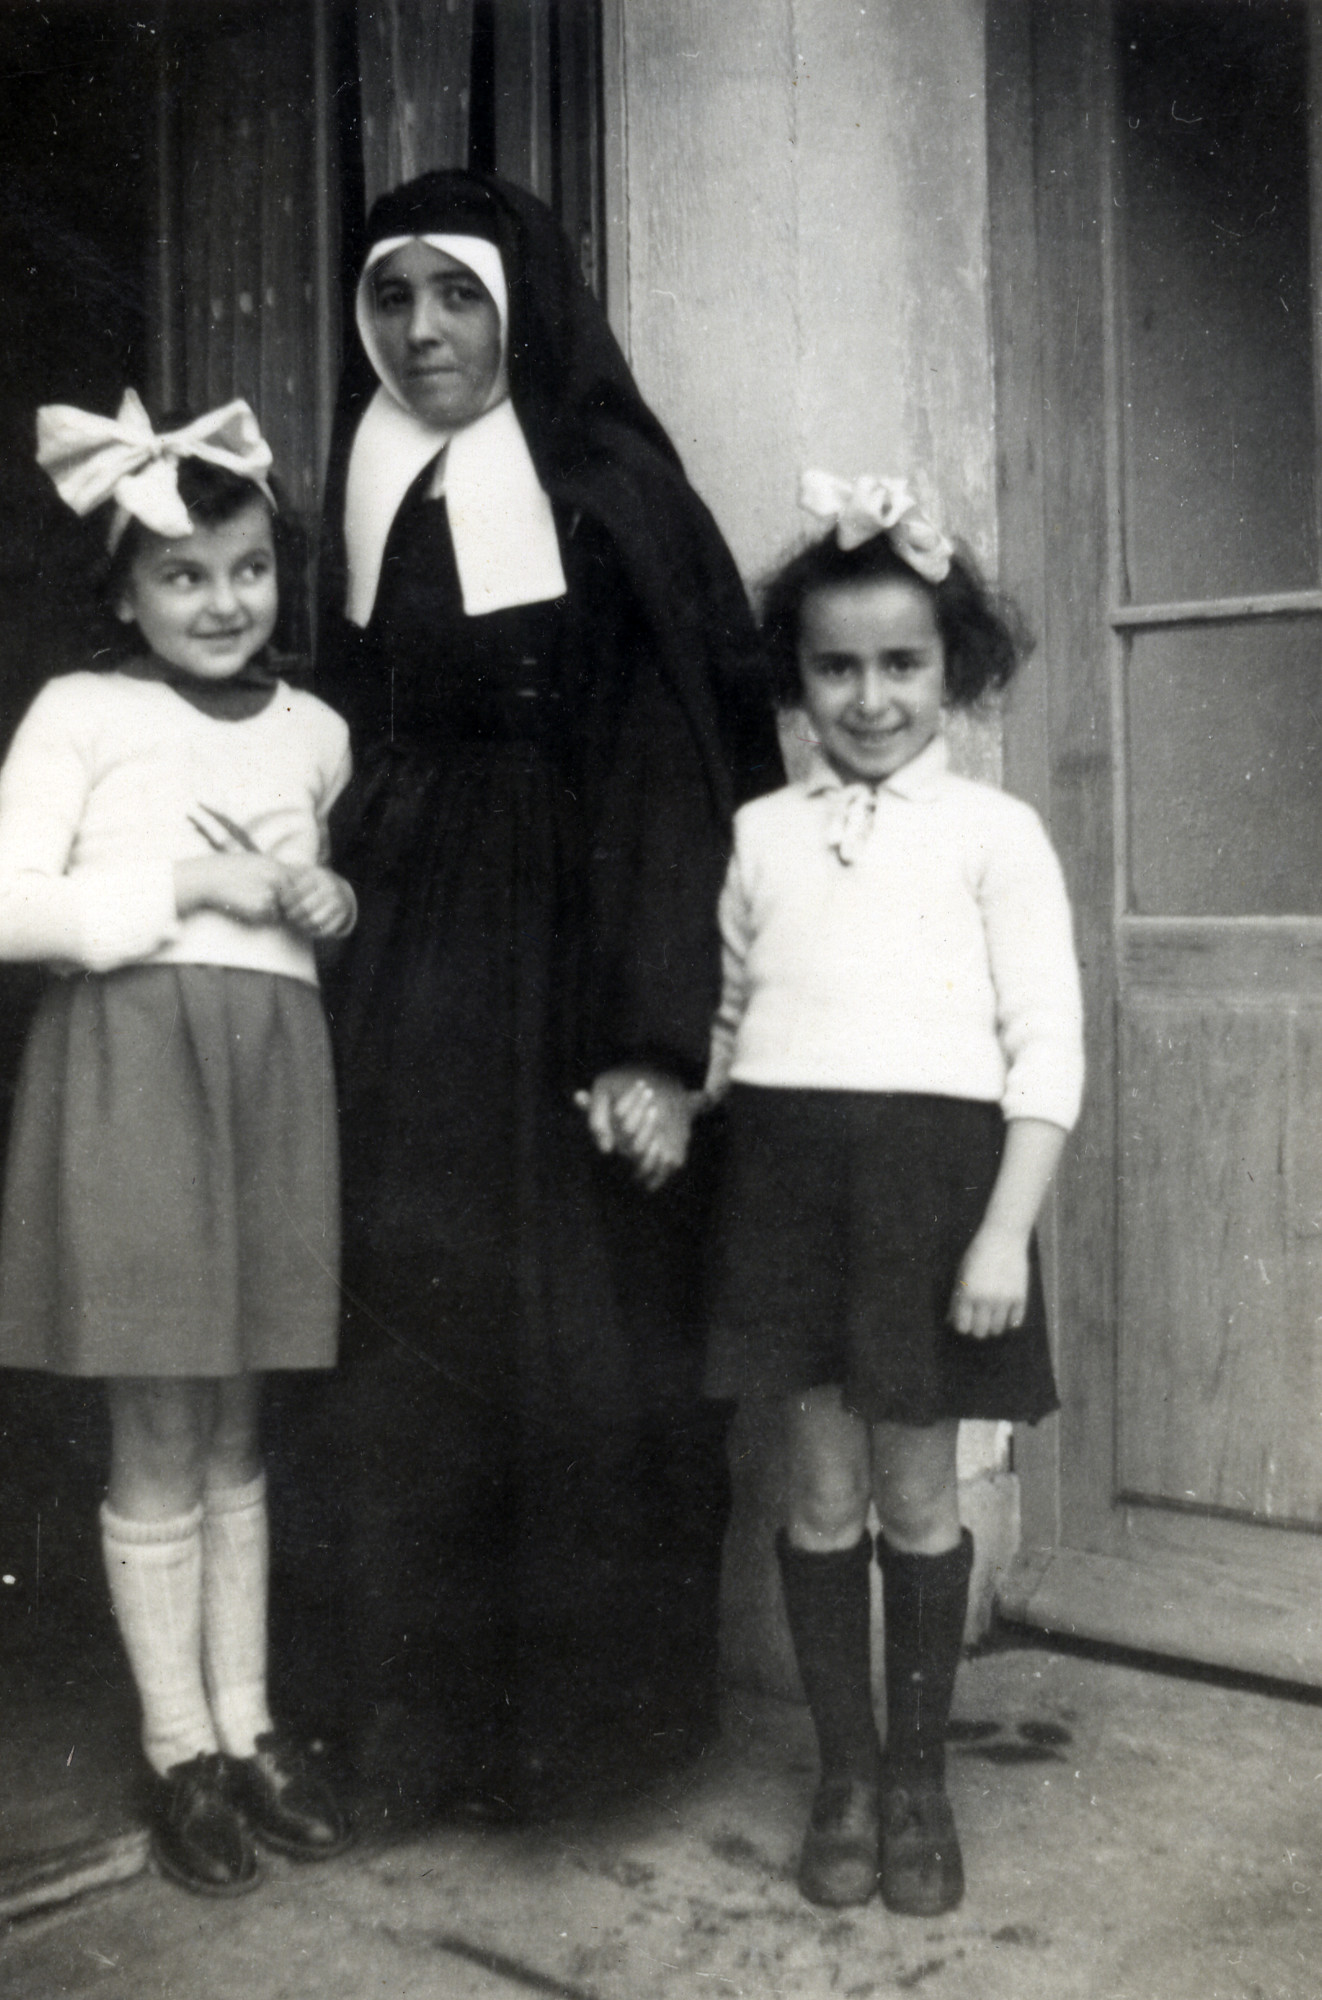 Claire Ridnik  with her cousin Aliette stand with a nun while in hiding.  Claire is on the left, and Aliette is on the right.